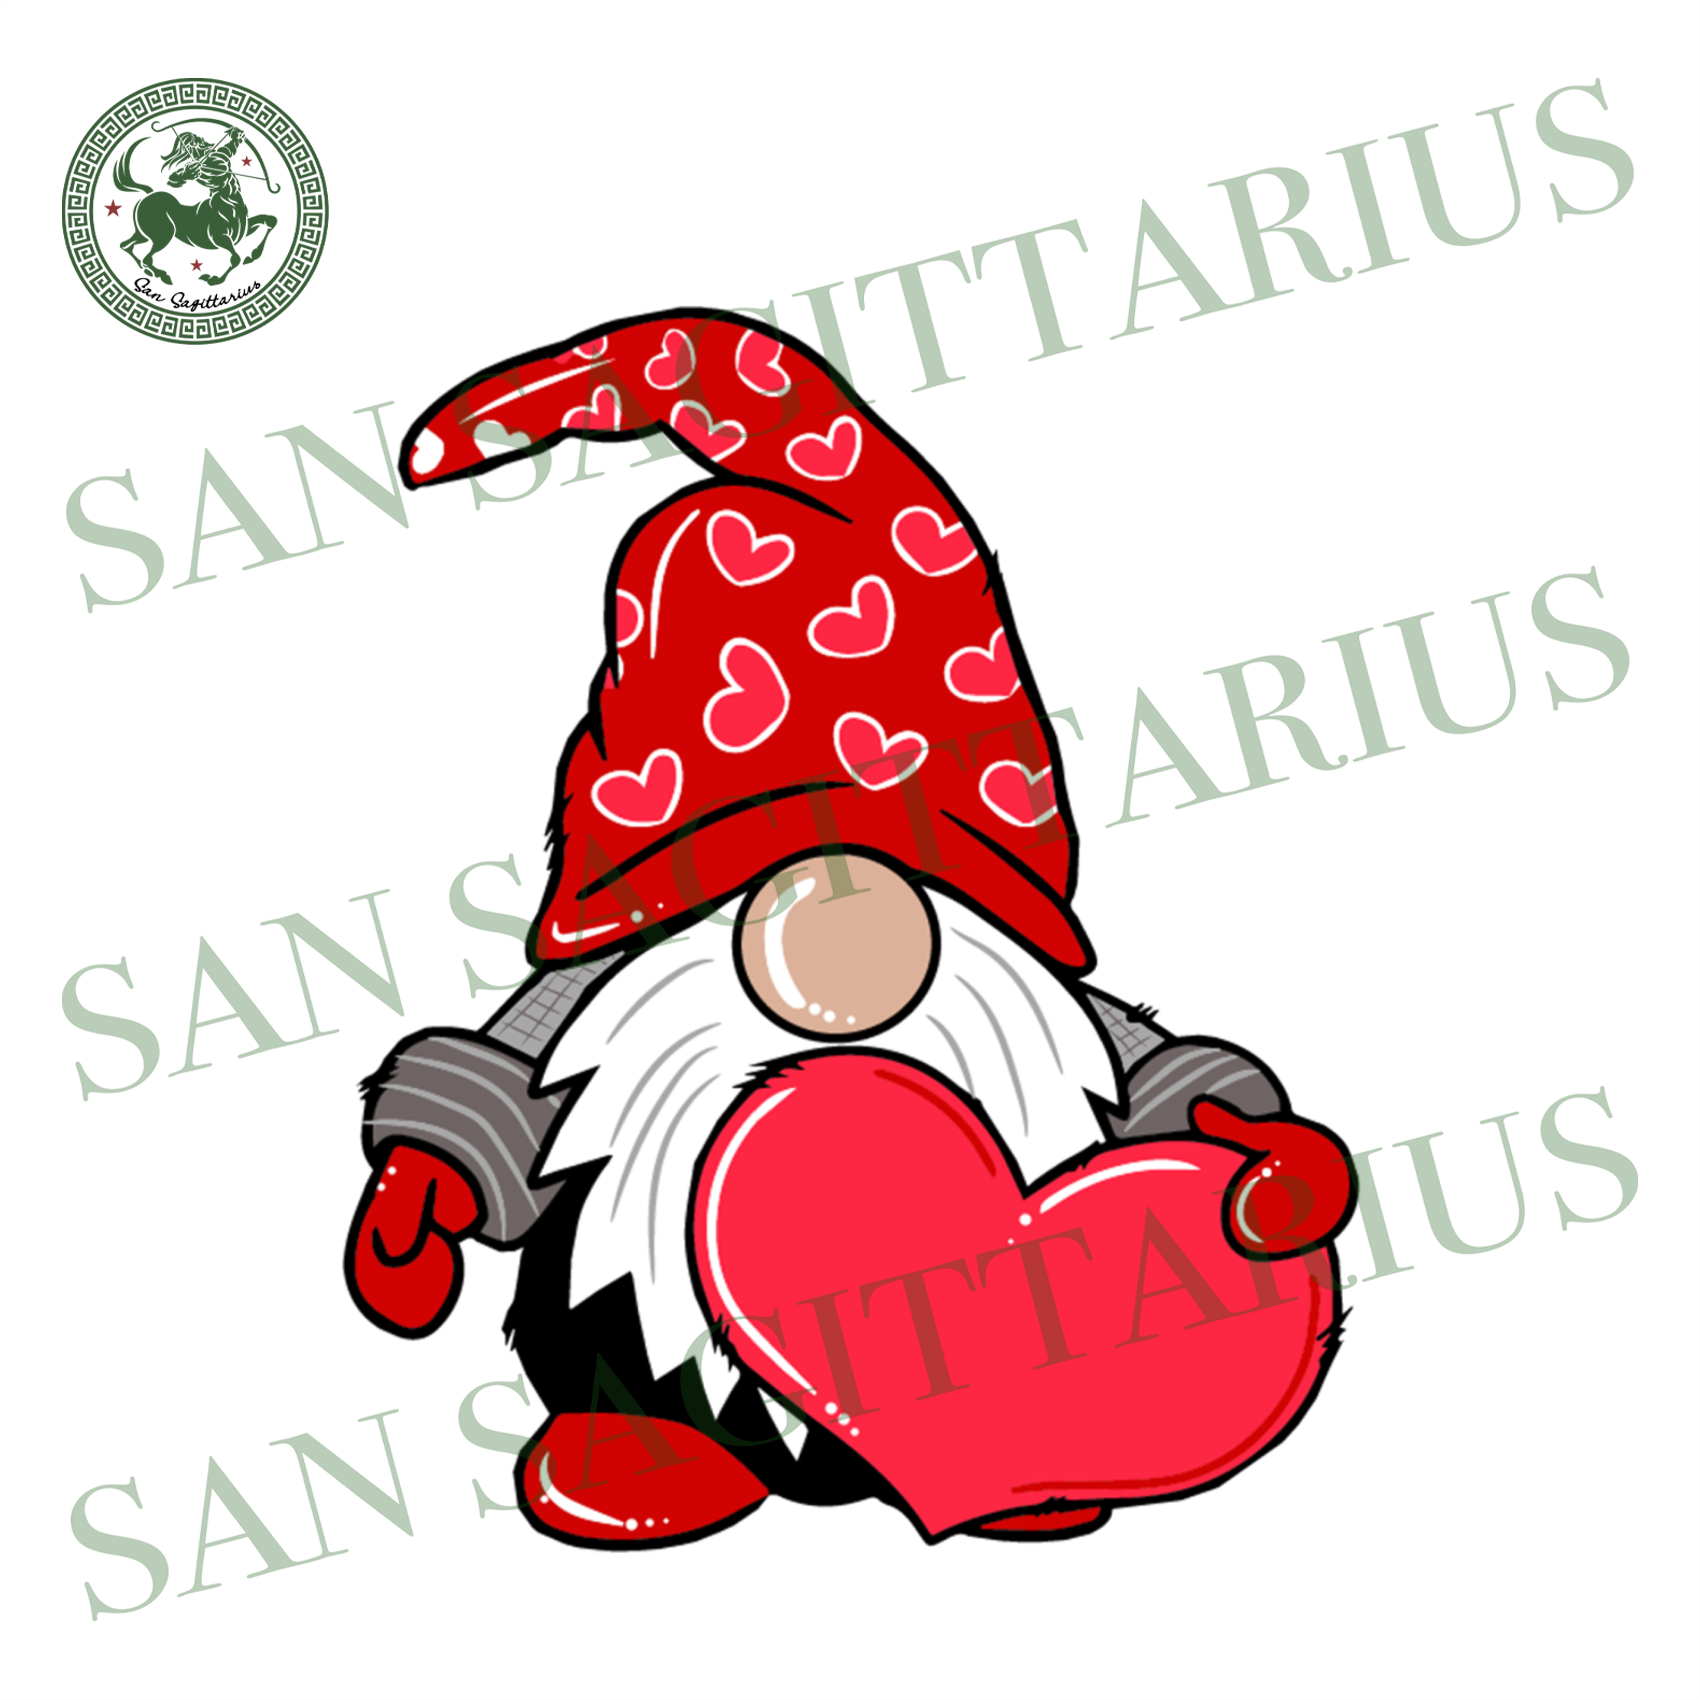 Gnome With Heart Svg, Gnome Lover, Gnome Heart Clip art, Valentine Gnome Svg, Boy Gnome, Love Gnomes, Gnome Valentine, Cute Gnome, Valentines Shirt Design, Lover Gift, Heart Svg, Couple Shirt